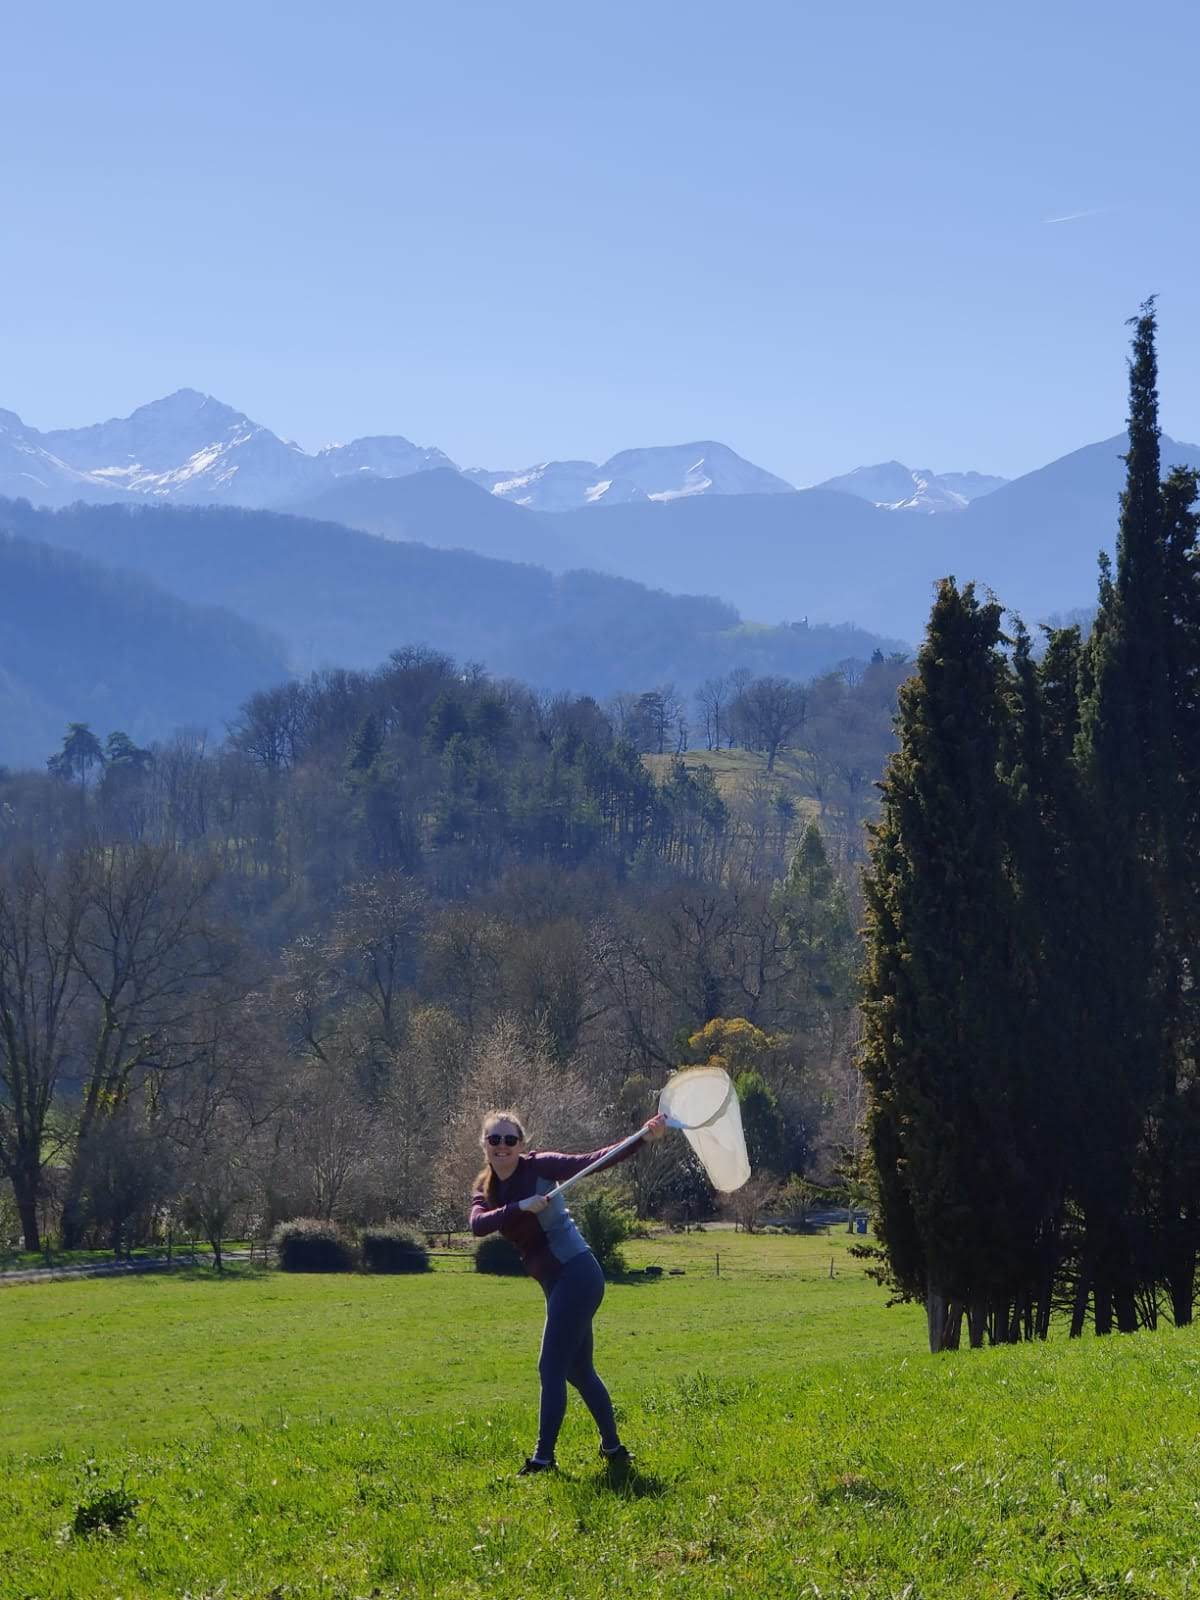 Jayme Lewthwaite conducts field work in the foothills of the Pyrenees